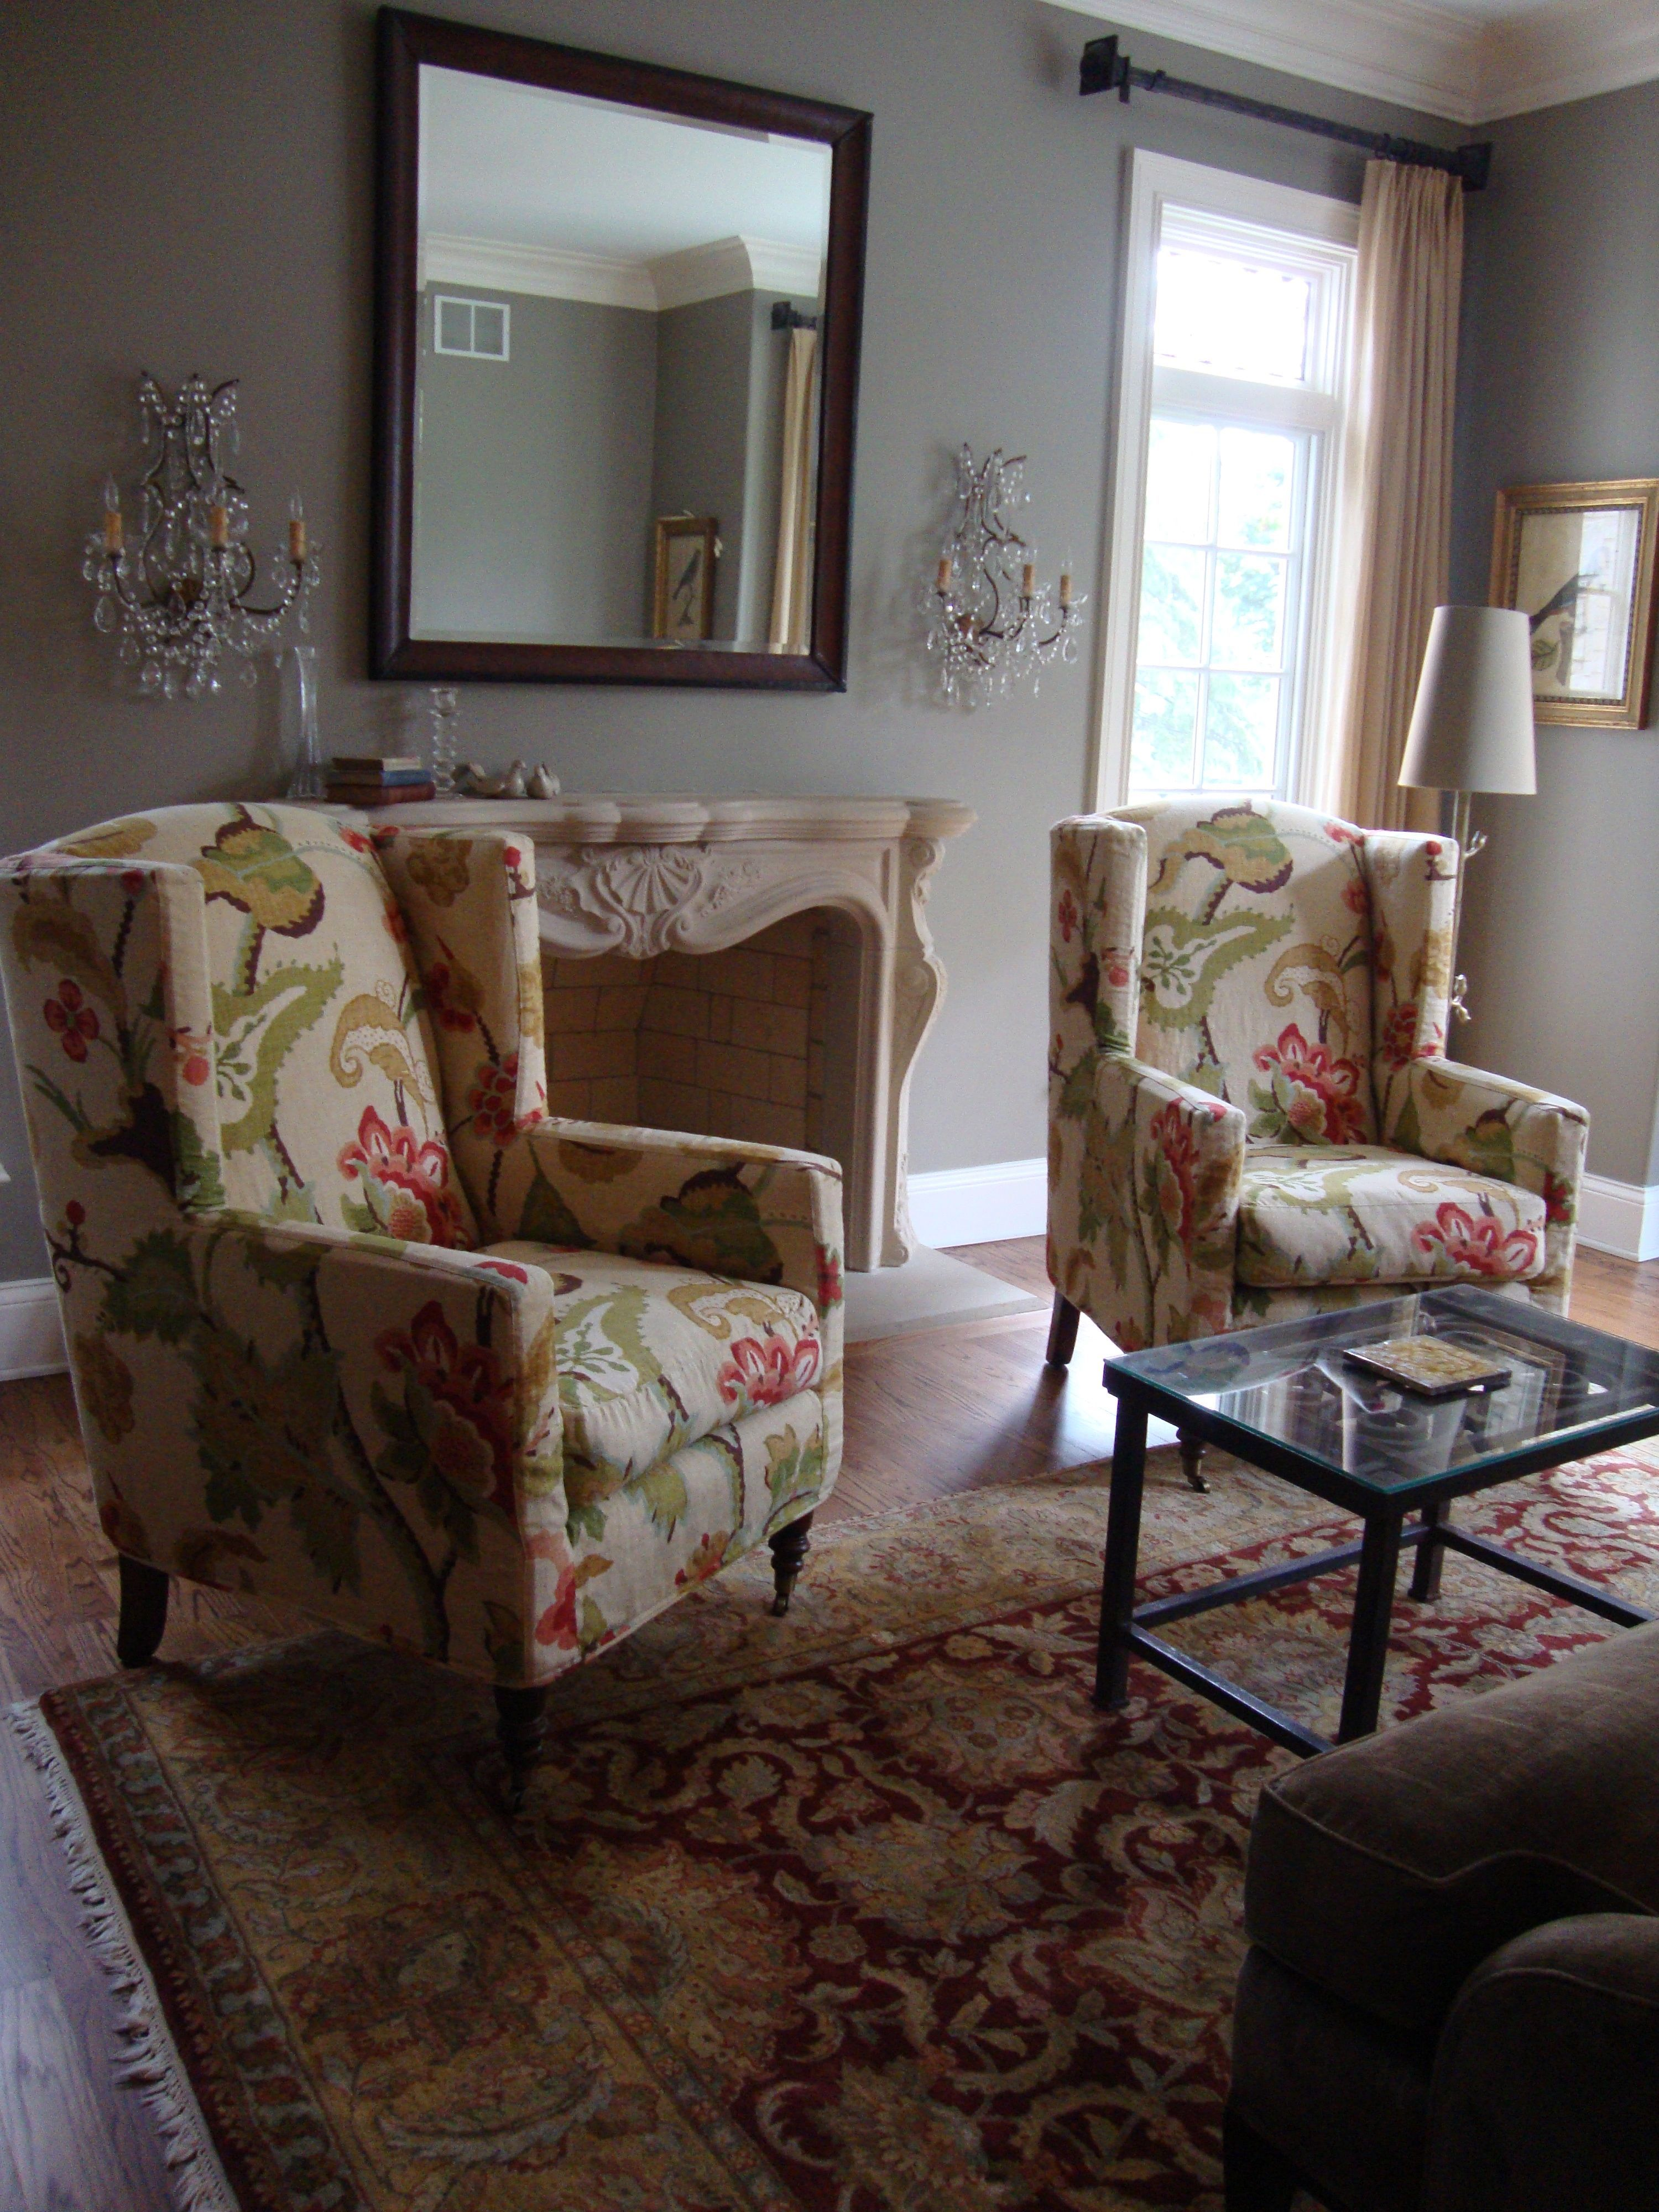 Admirable Quatrine Slipcovered Modern Wingback Chairs In A Bold Floral Gmtry Best Dining Table And Chair Ideas Images Gmtryco